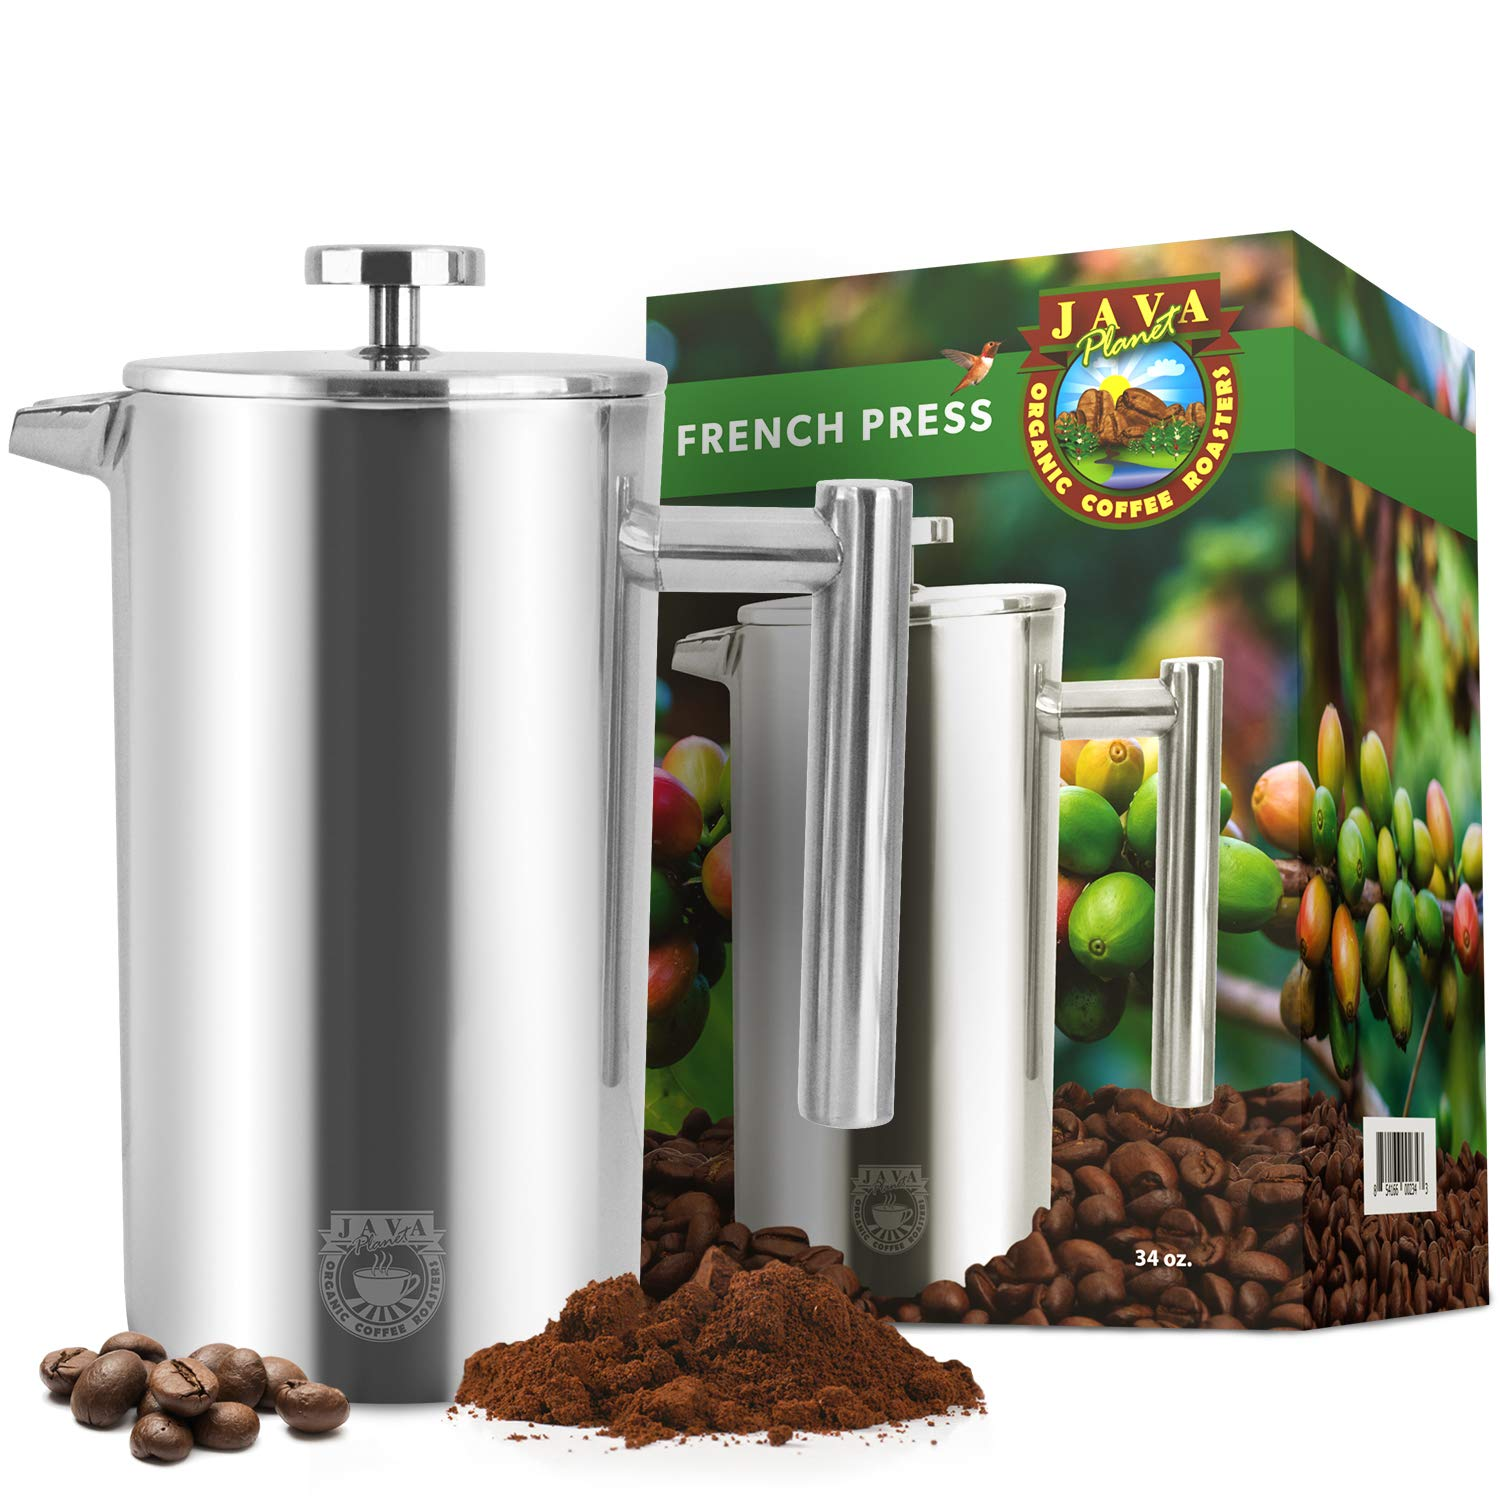 Java Planet French Press Coffee Maker – Stainless Steel – Insulated – 34oz